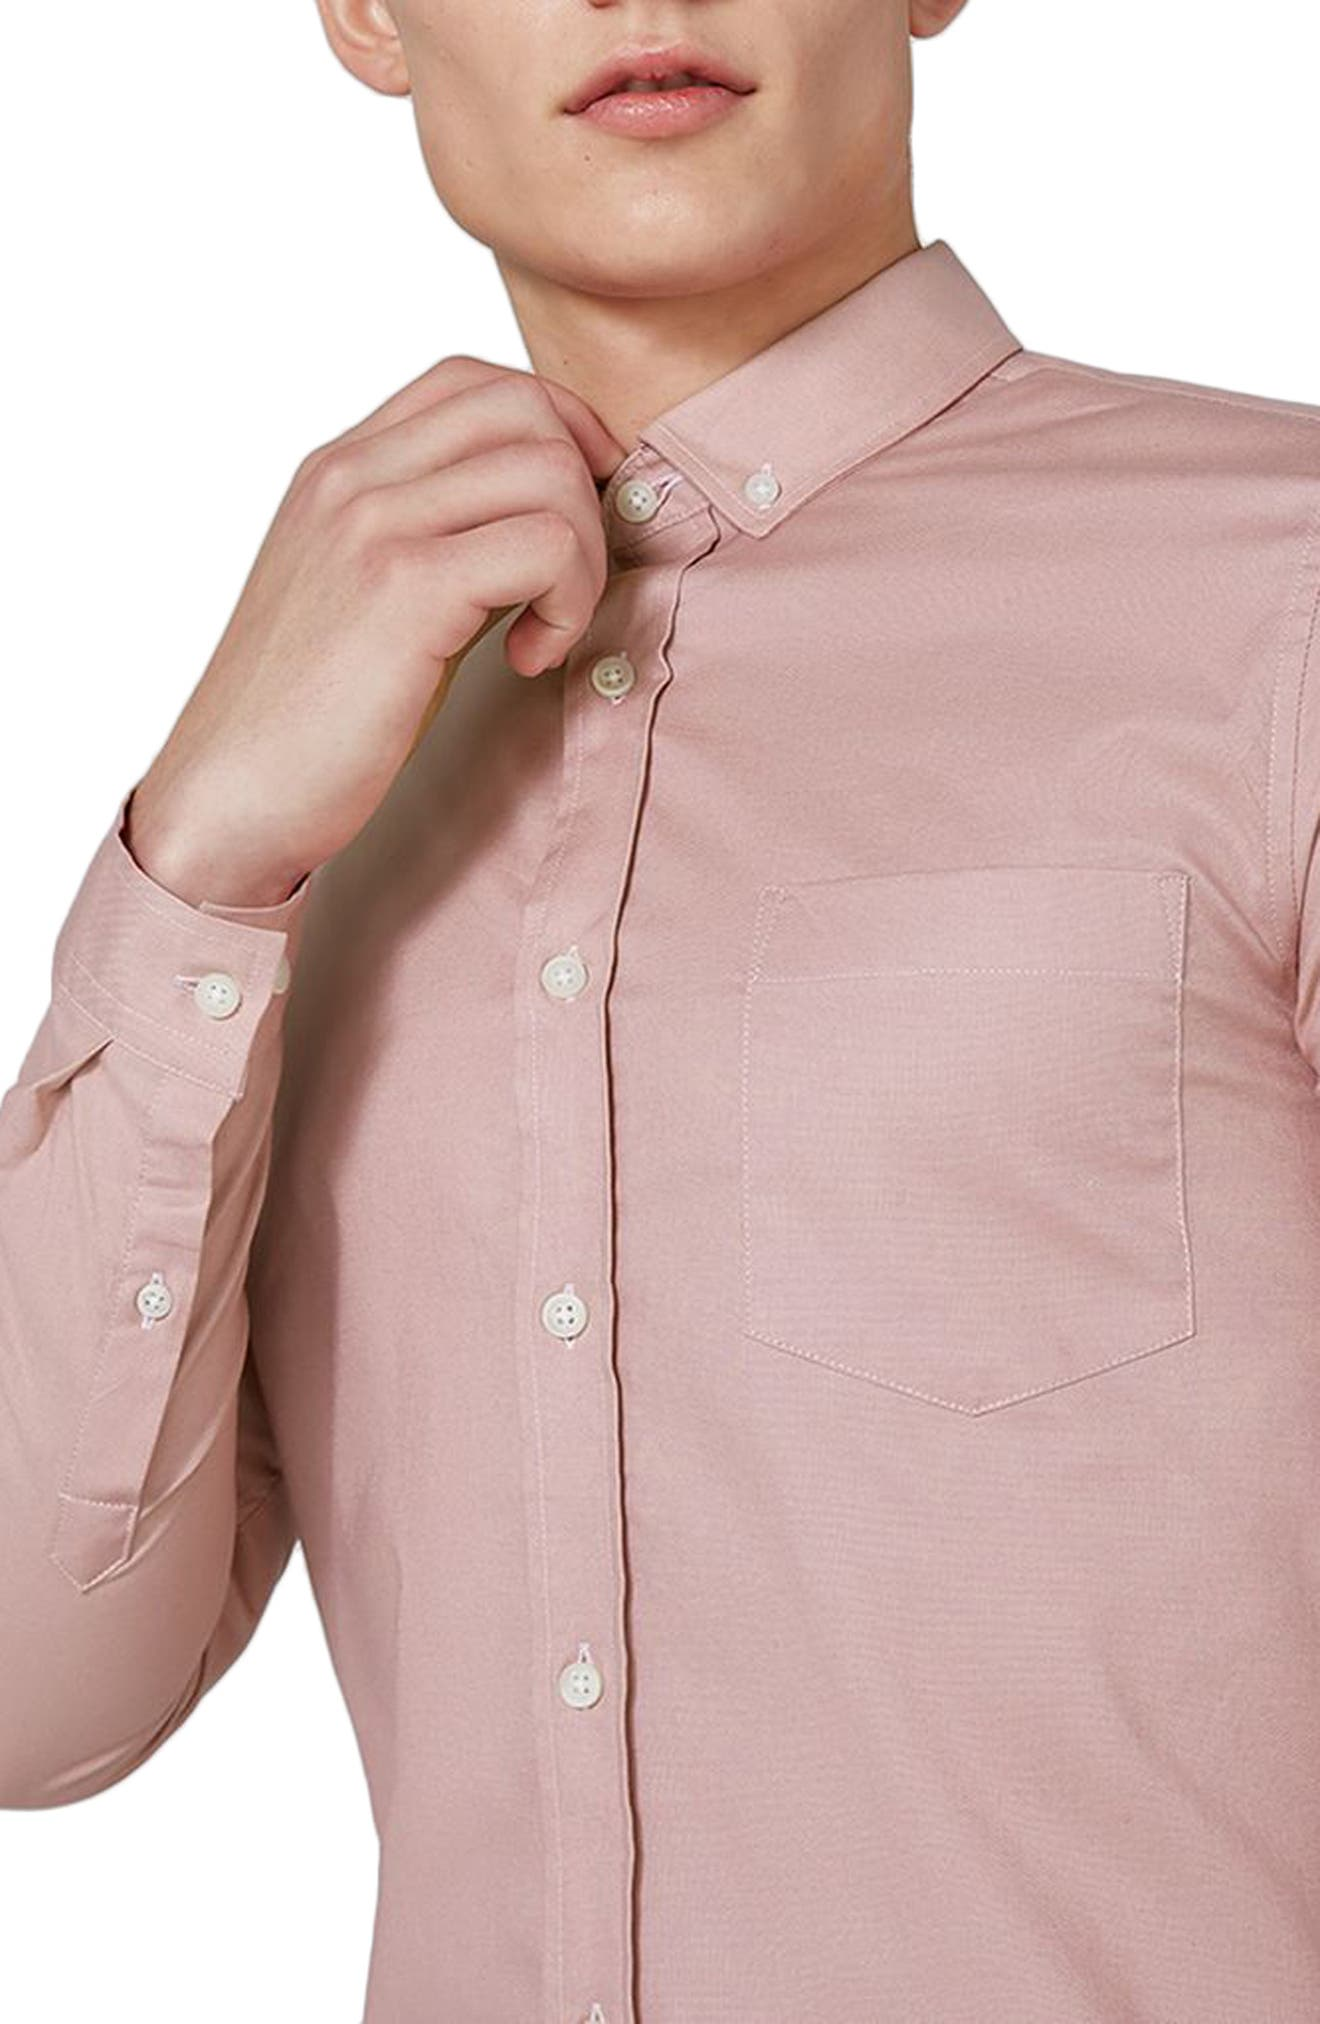 Muscle Fit Oxford Shirt,                             Alternate thumbnail 3, color,                             Pink